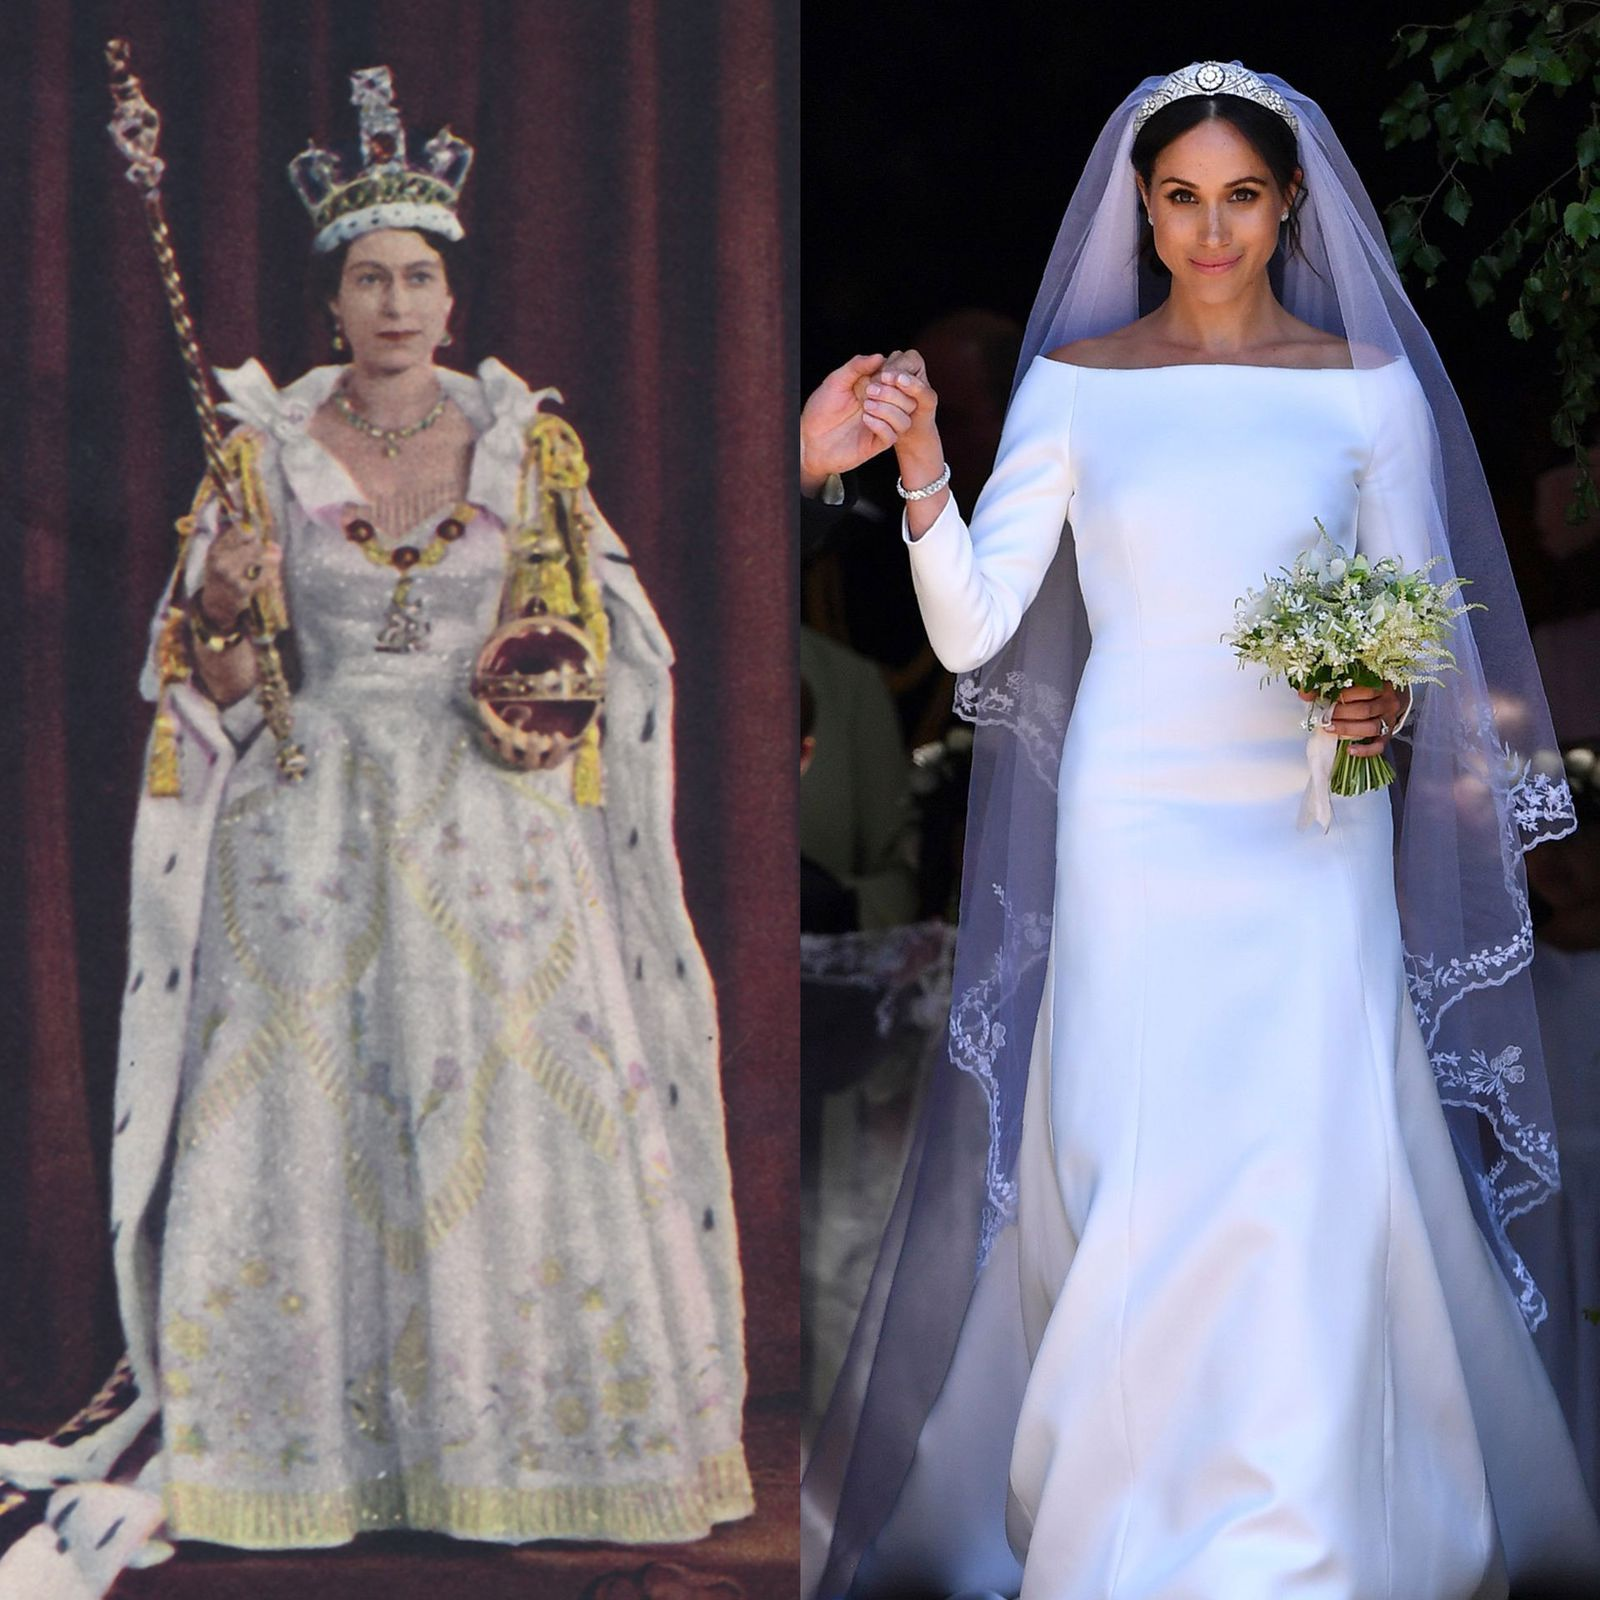 Meghan's Wedding Veil Was Inspired By Queen Elizabeth's